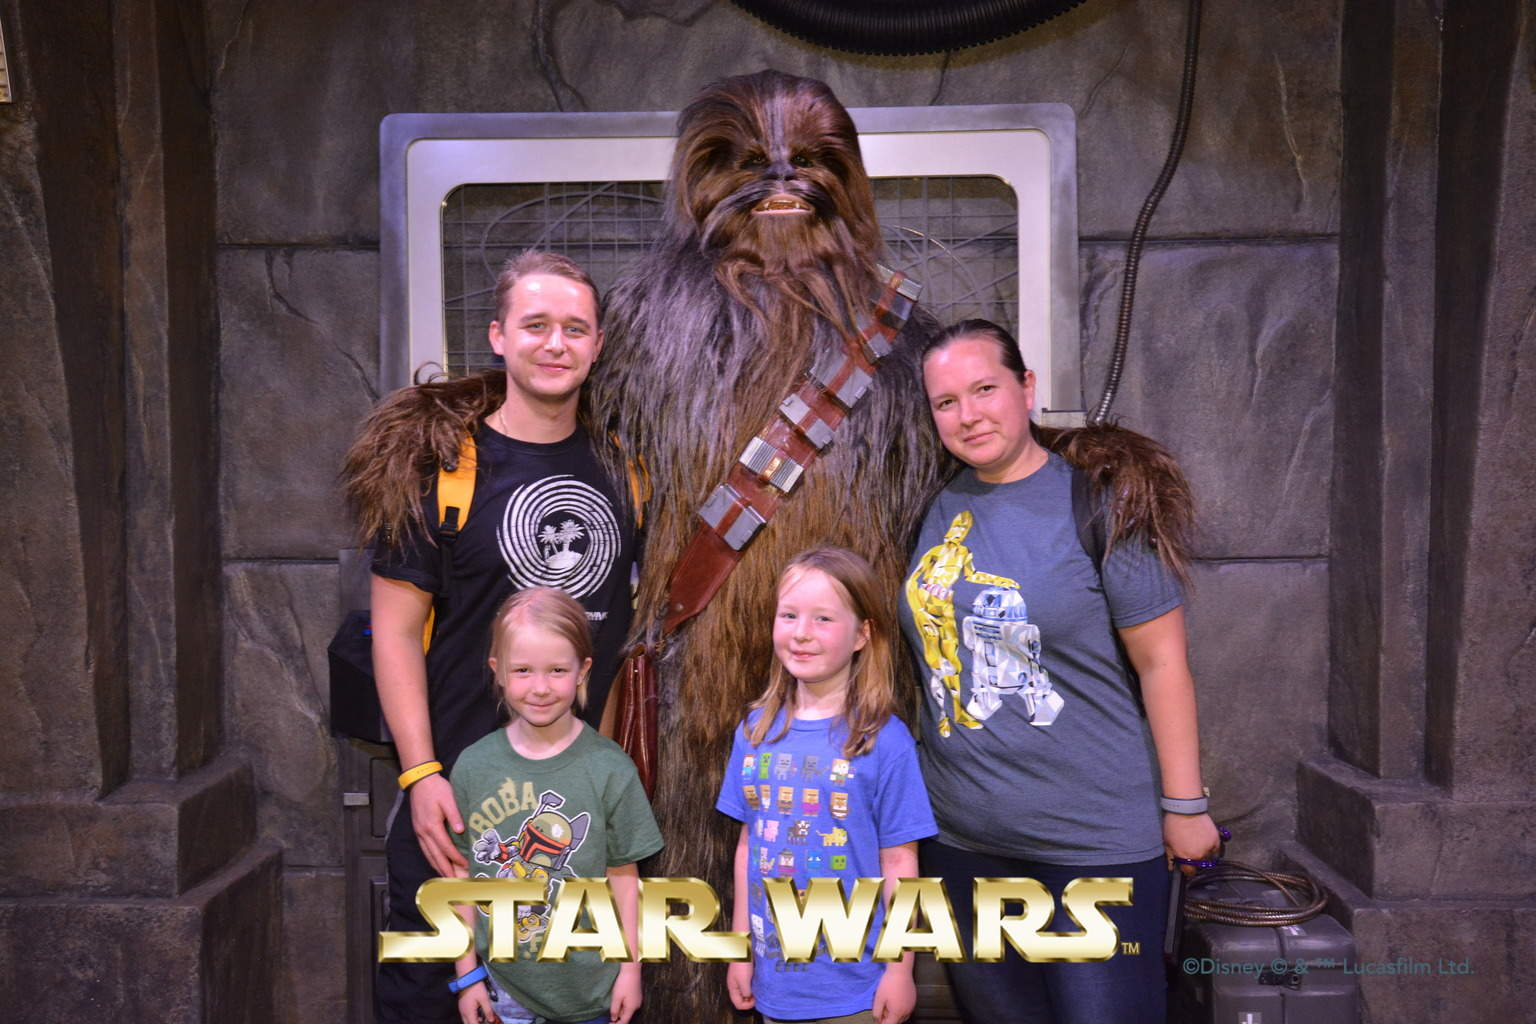 Star wars Chewbacca Disney WDW